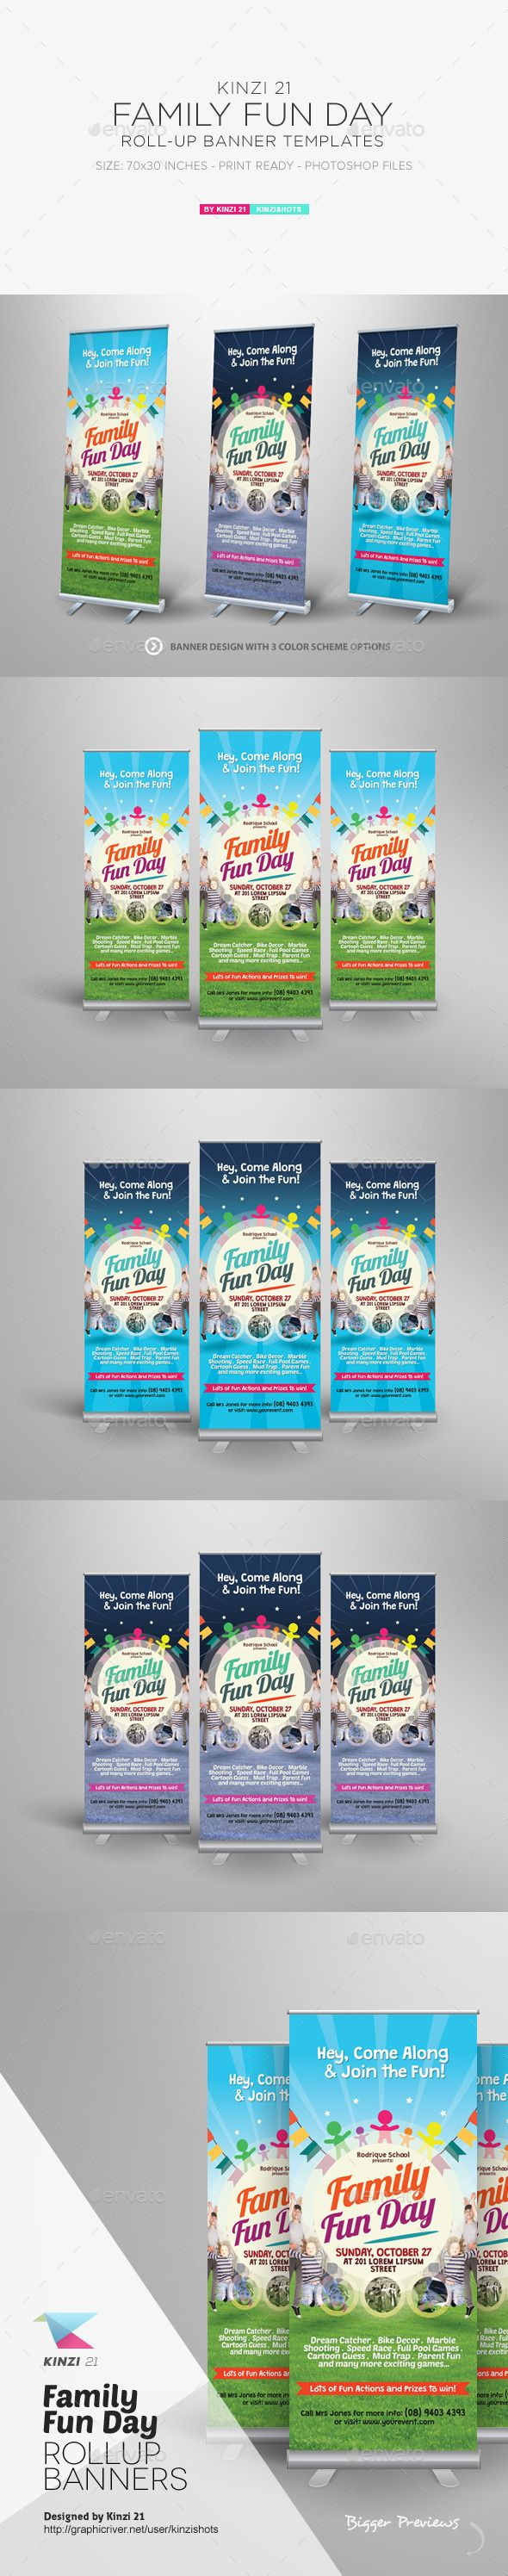 family fun day roll up banners kid flyer template and flyers family fun day roll up banners template design